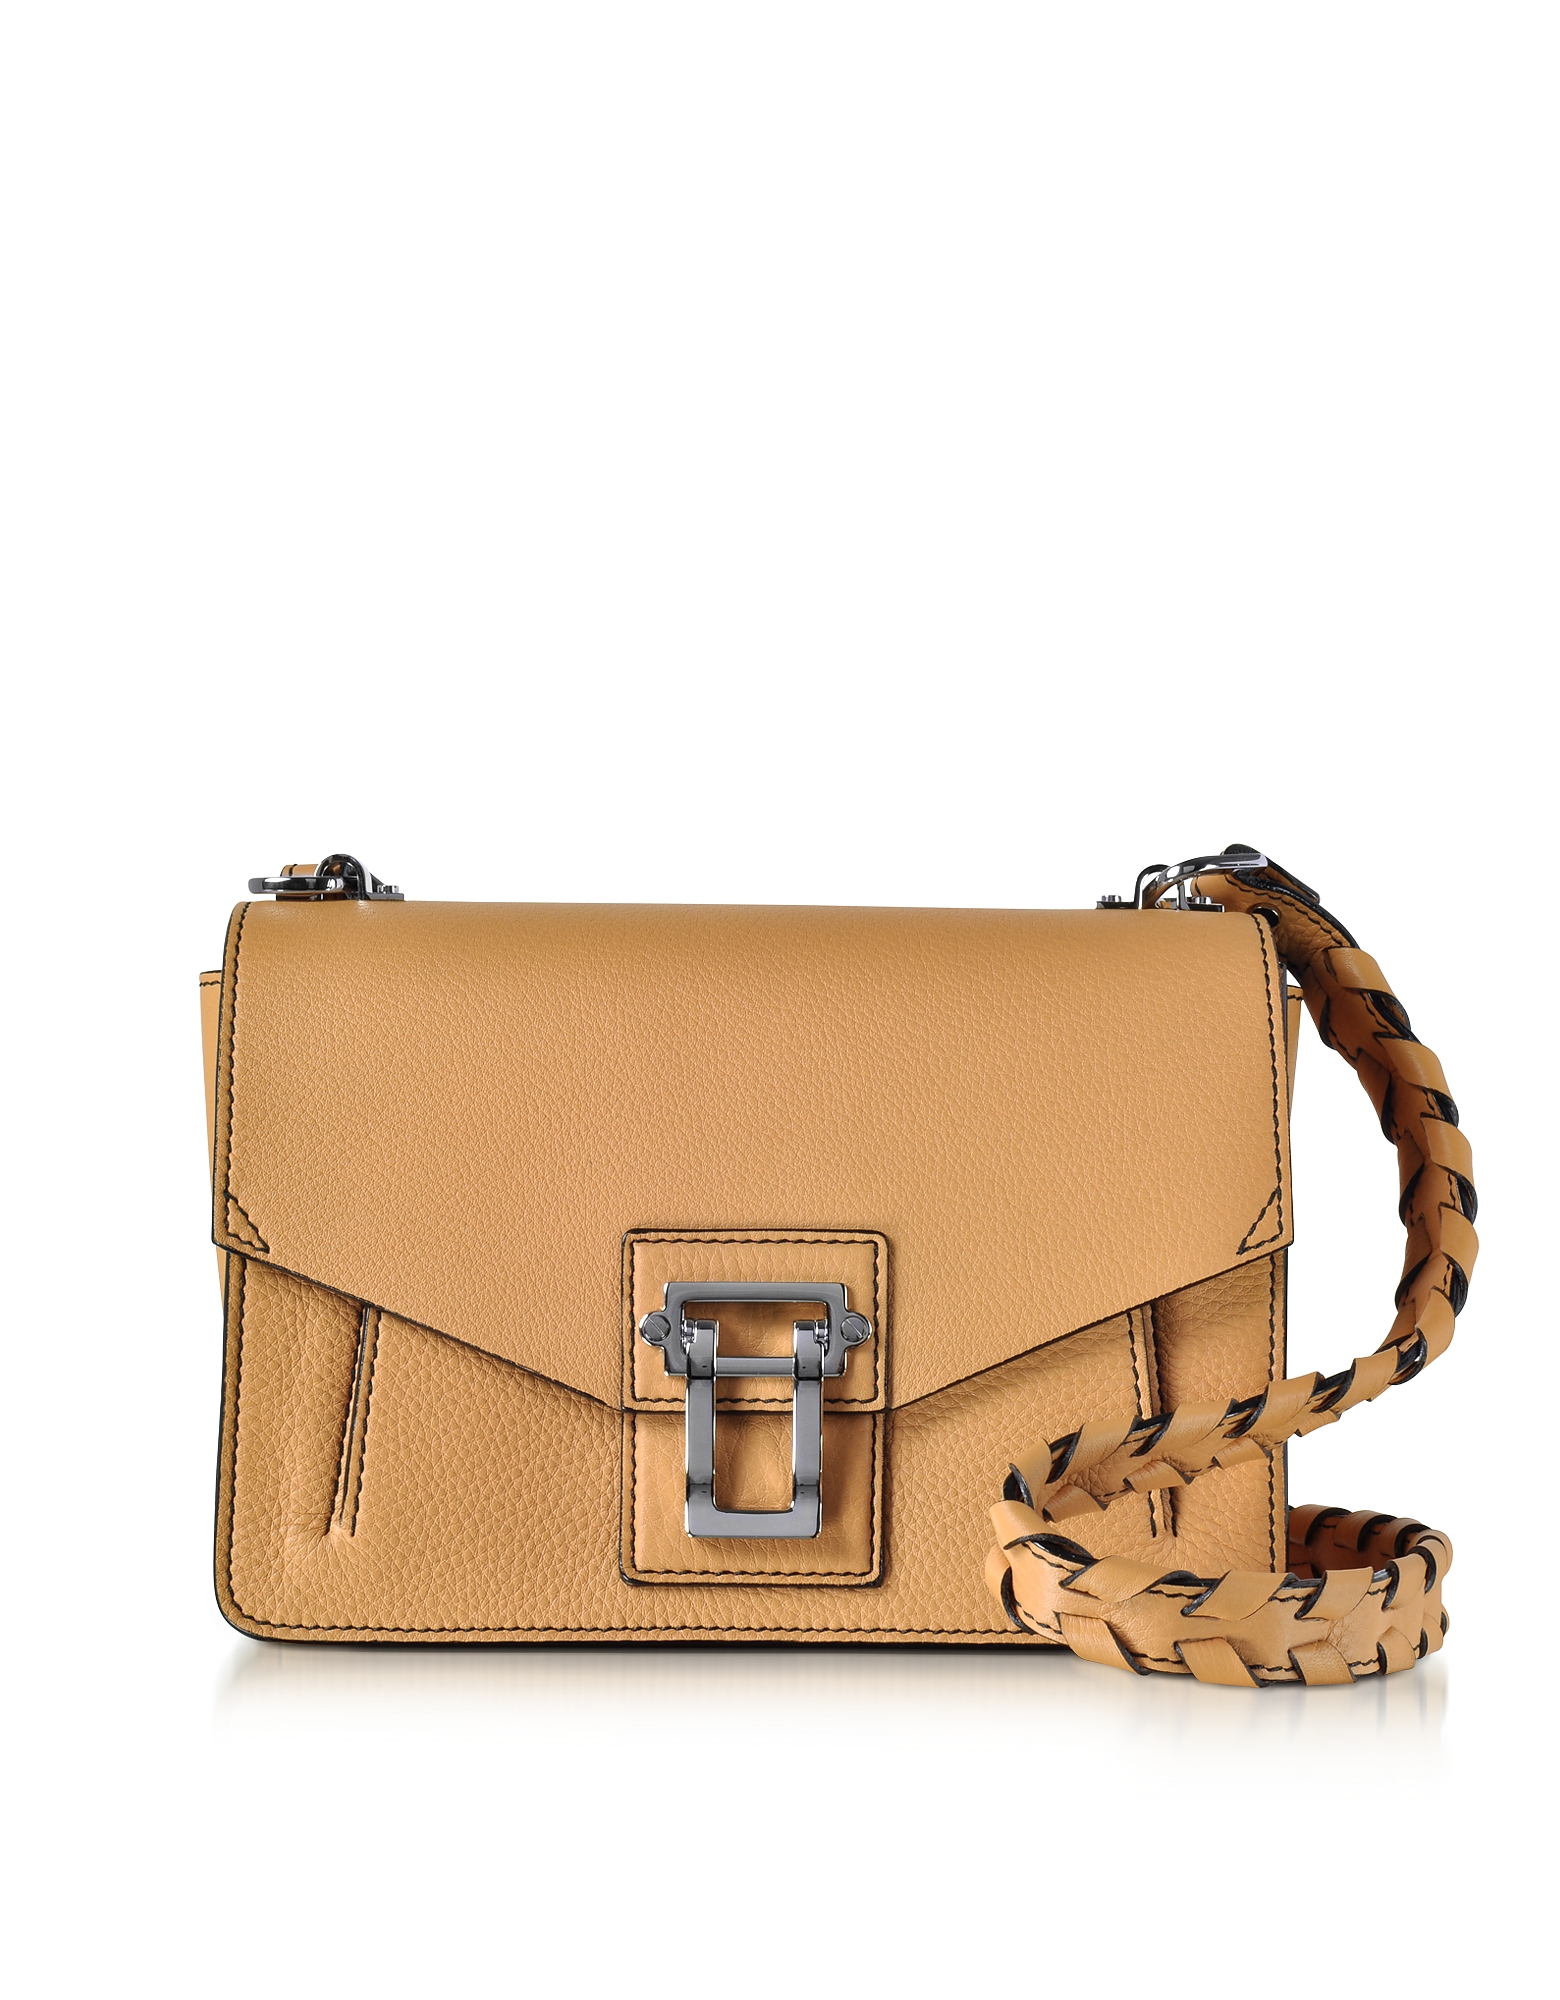 Proenza Schouler Handbags, Hava Wheat Lindos Leather Shoulder Bag w/Whipstitch Strap